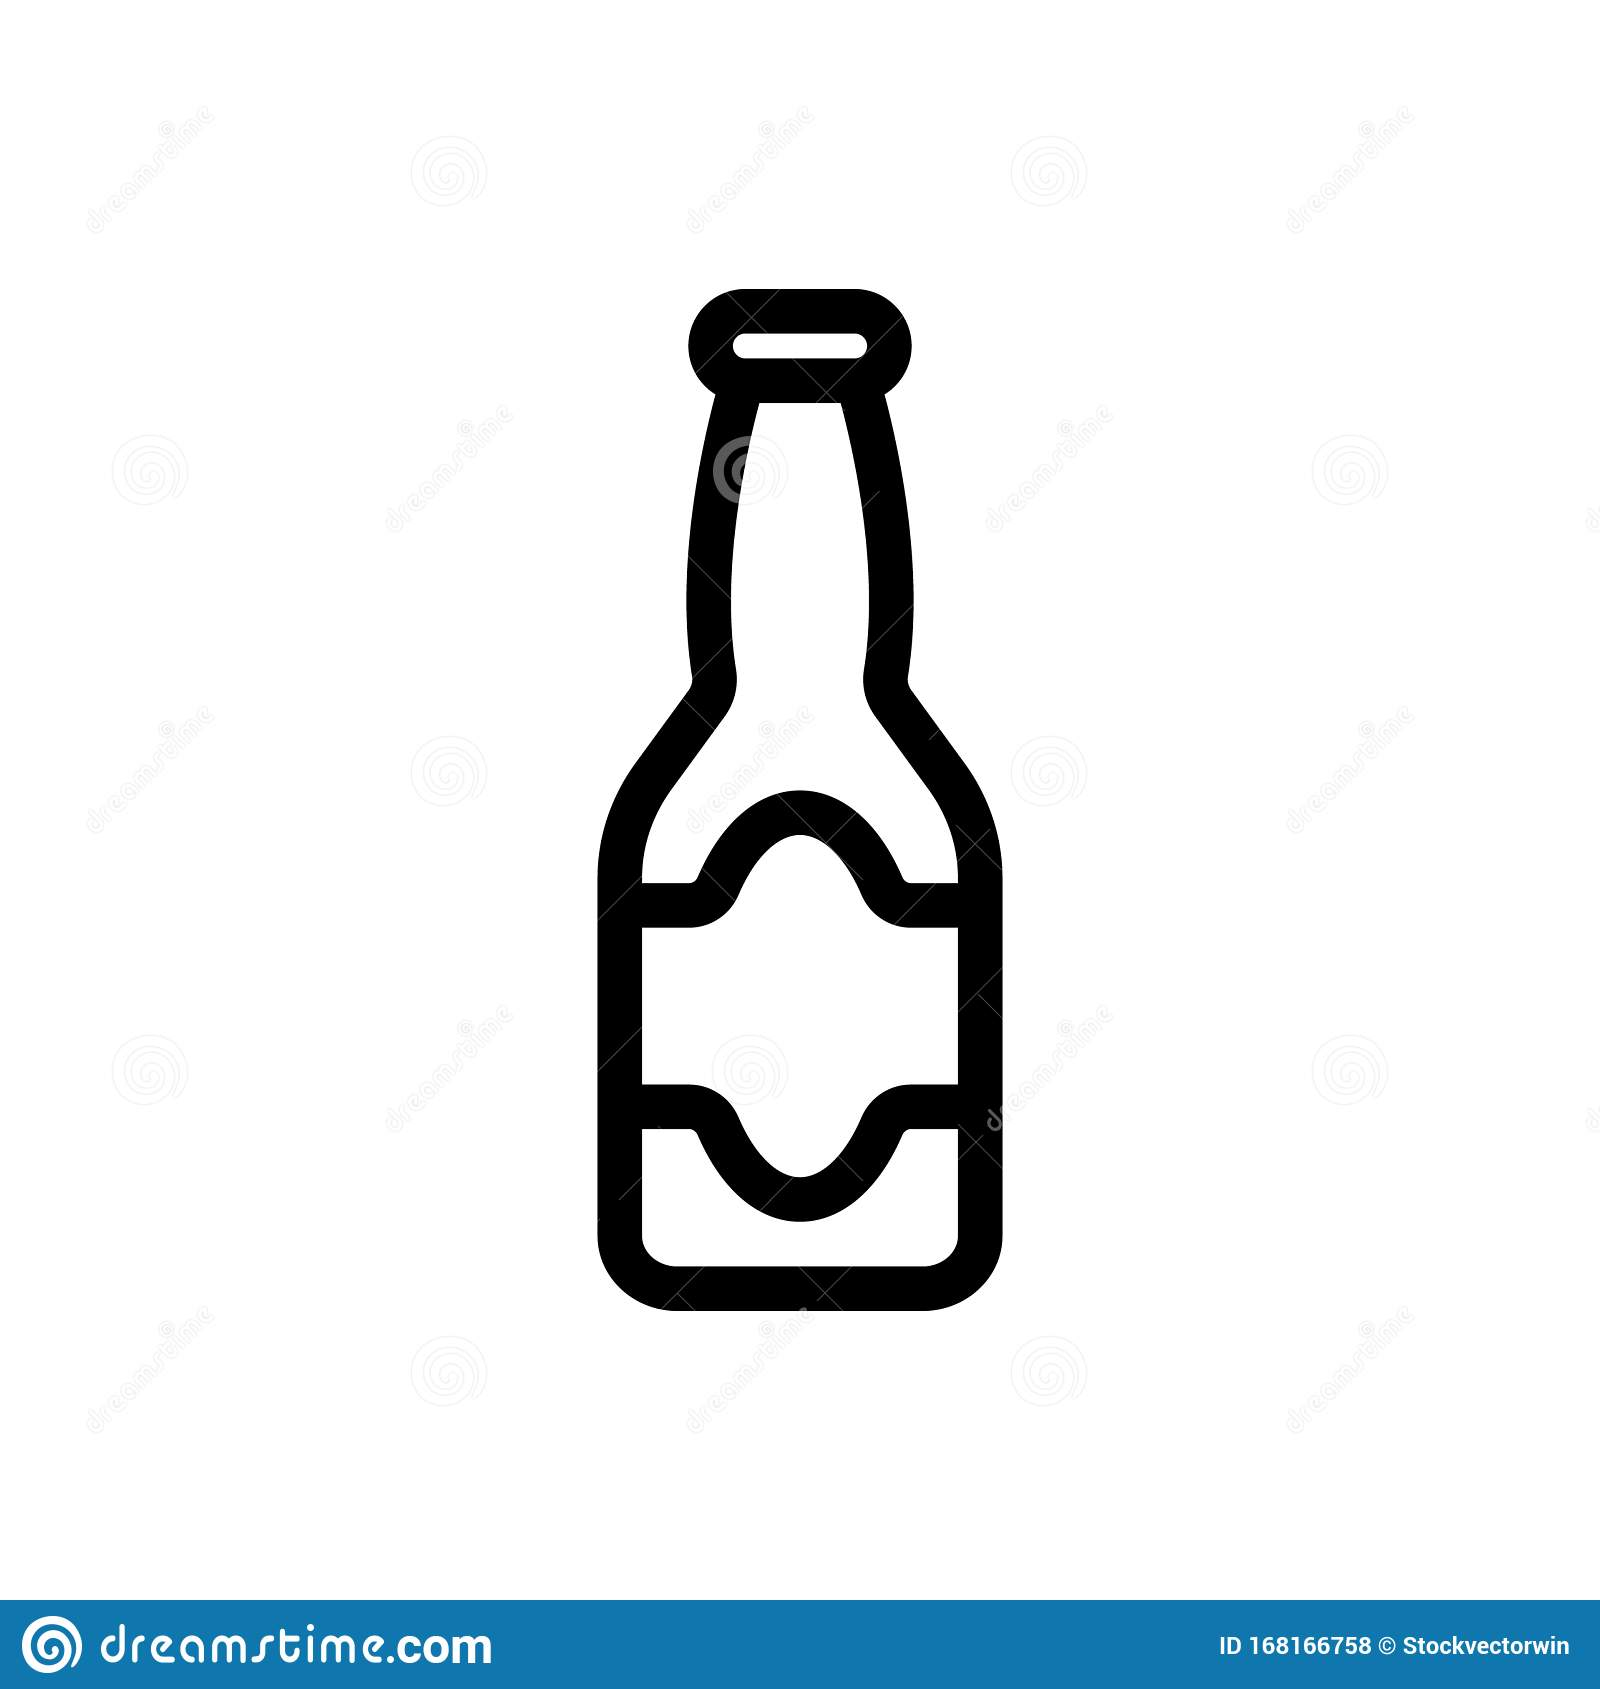 A Bottle Of Beer Icon Vector Isolated Contour Symbol Illustration Stock Vector Illustration Of Items Concept 168166758 With these beer icon resources, you can use for web design, powerpoint presentations, classrooms, and other graphic. dreamstime com